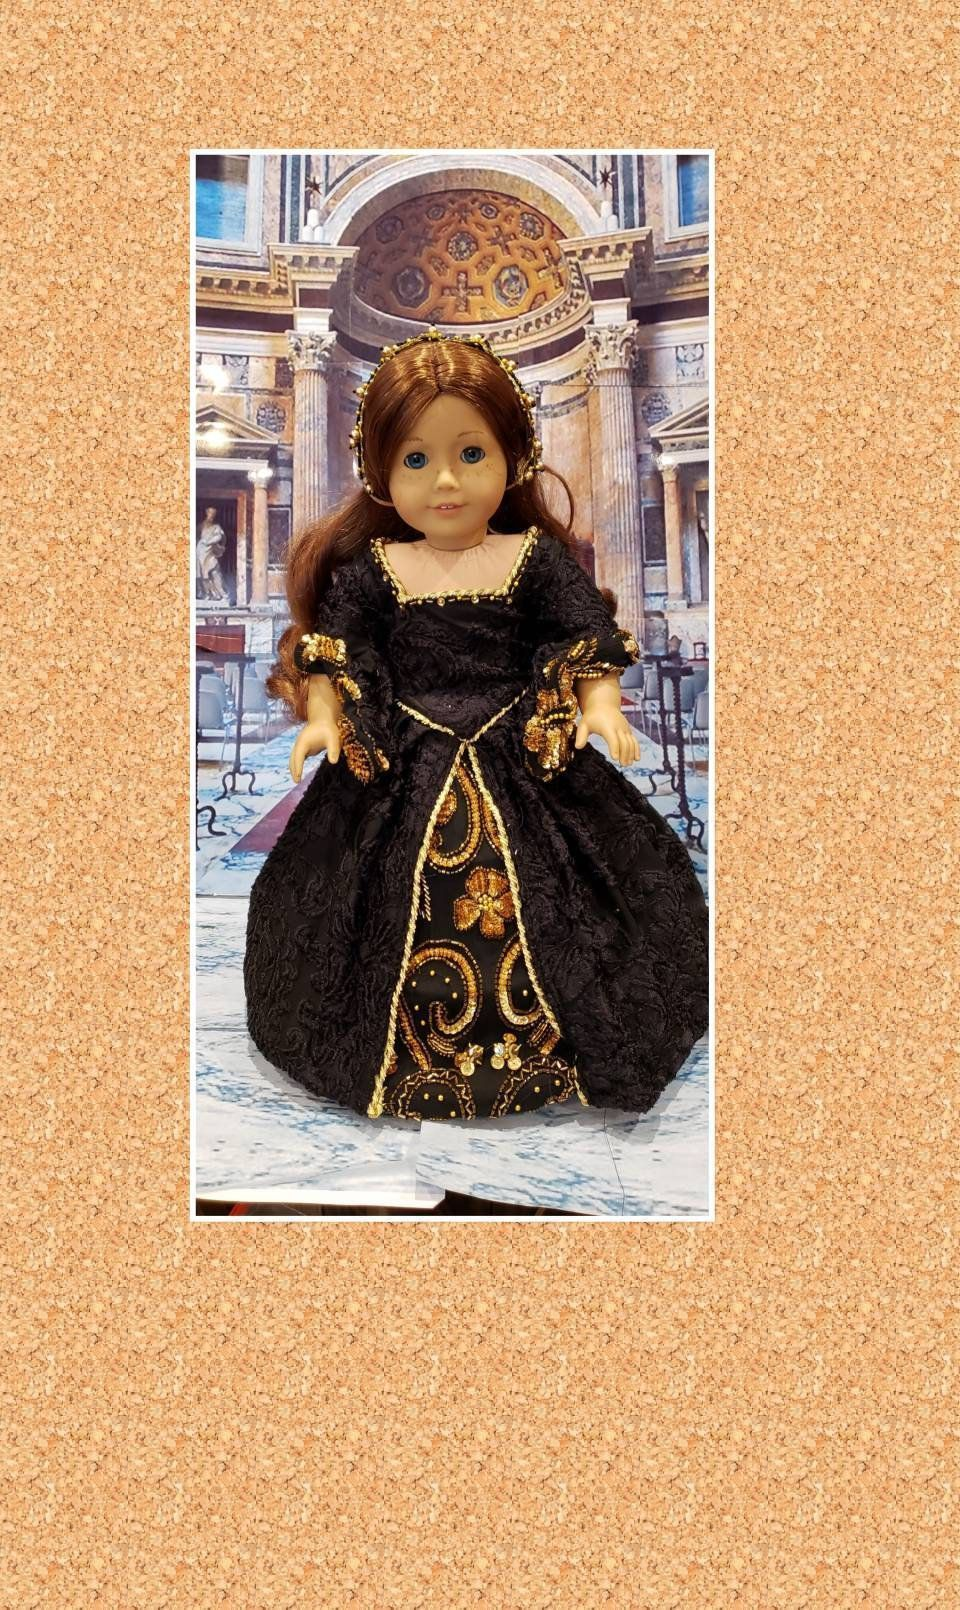 Historical 18 inch doll clothes Catalina of Aragon will fit American Girl® Royal Renaissance ensemble period clothing OOAK #historicaldollclothes Historical 18 inch doll clothes Catalina of Aragon will fit American Girl®   Royal Renaissance ensemble period clothing  OOAK #historicaldollclothes Historical 18 inch doll clothes Catalina of Aragon will fit American Girl® Royal Renaissance ensemble period clothing OOAK #historicaldollclothes Historical 18 inch doll clothes Catalina of Aragon will #historicaldollclothes